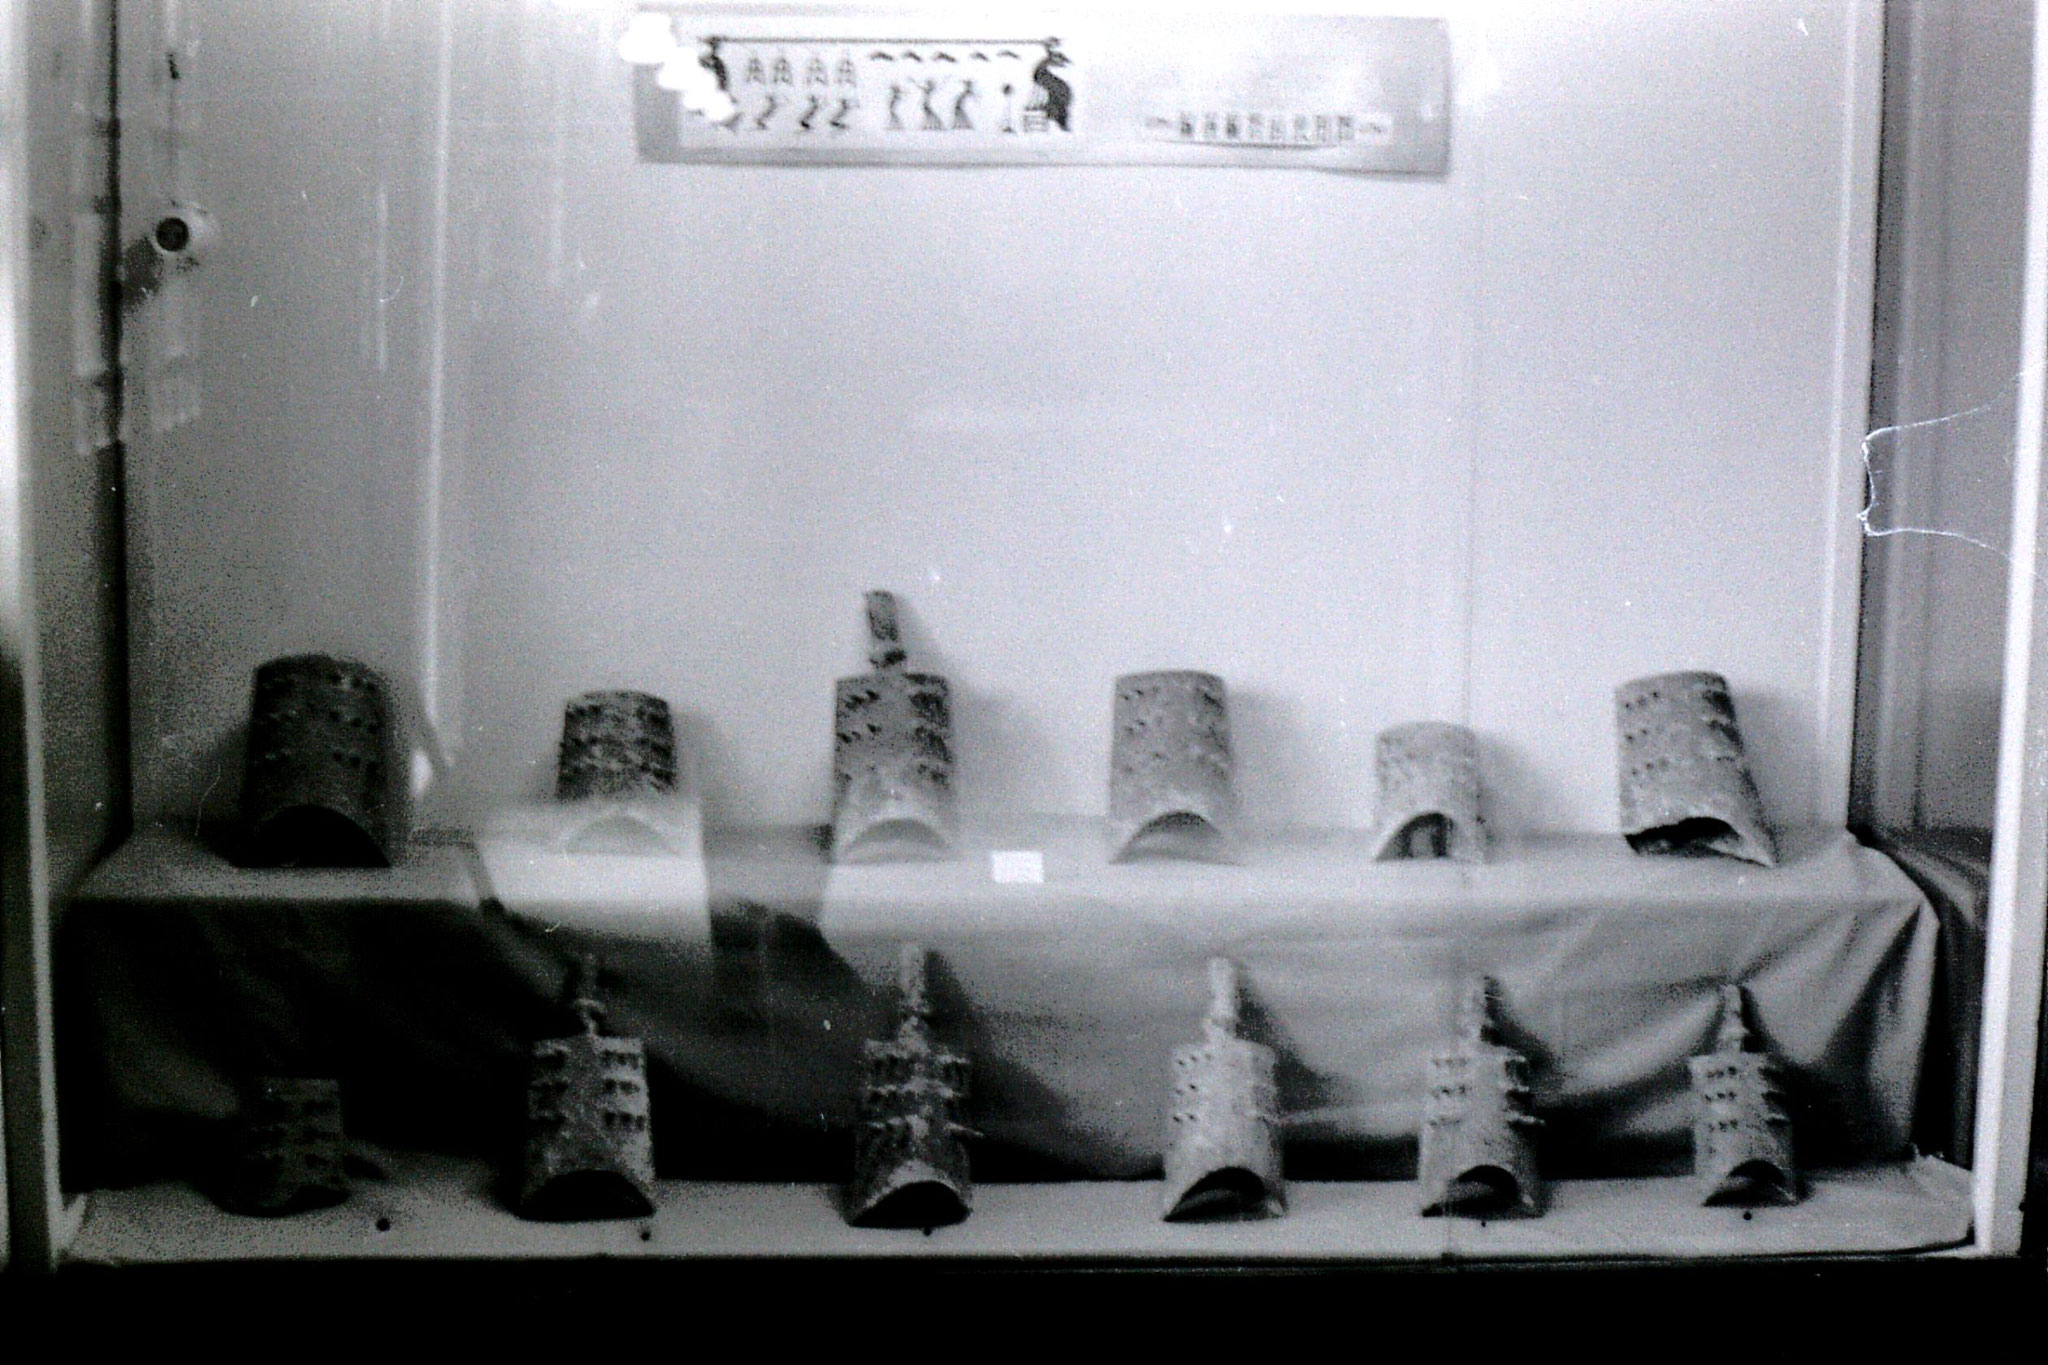 4/3/1989: 12: Xi'an bells in museum